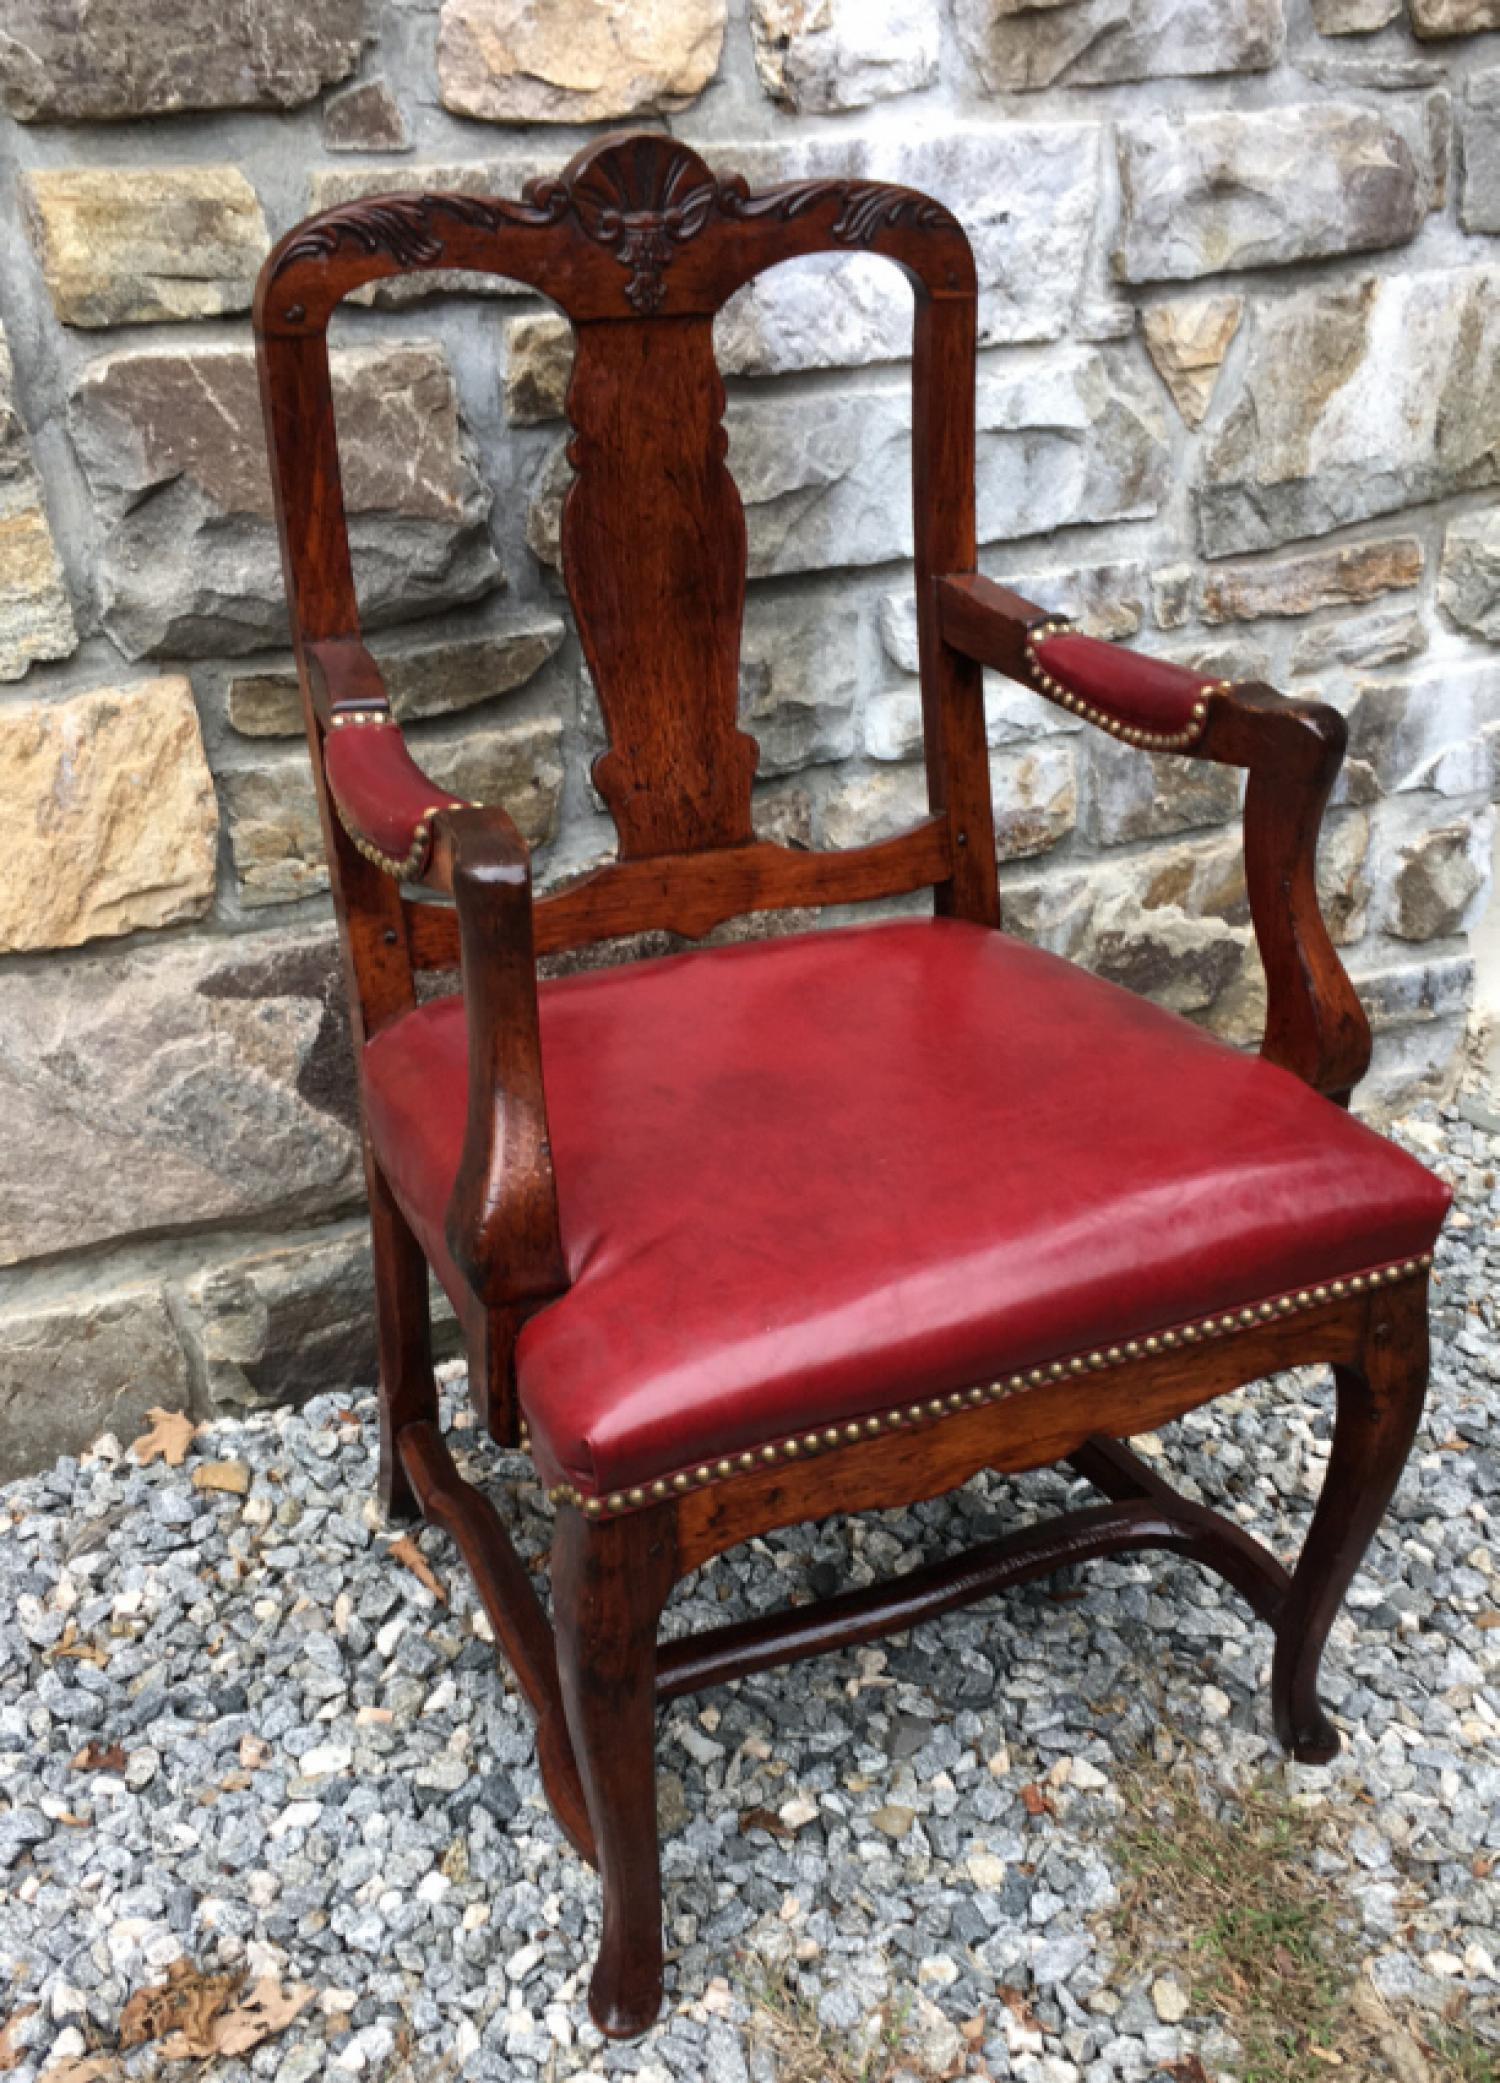 Antique English walnut and leather desk chair c1885